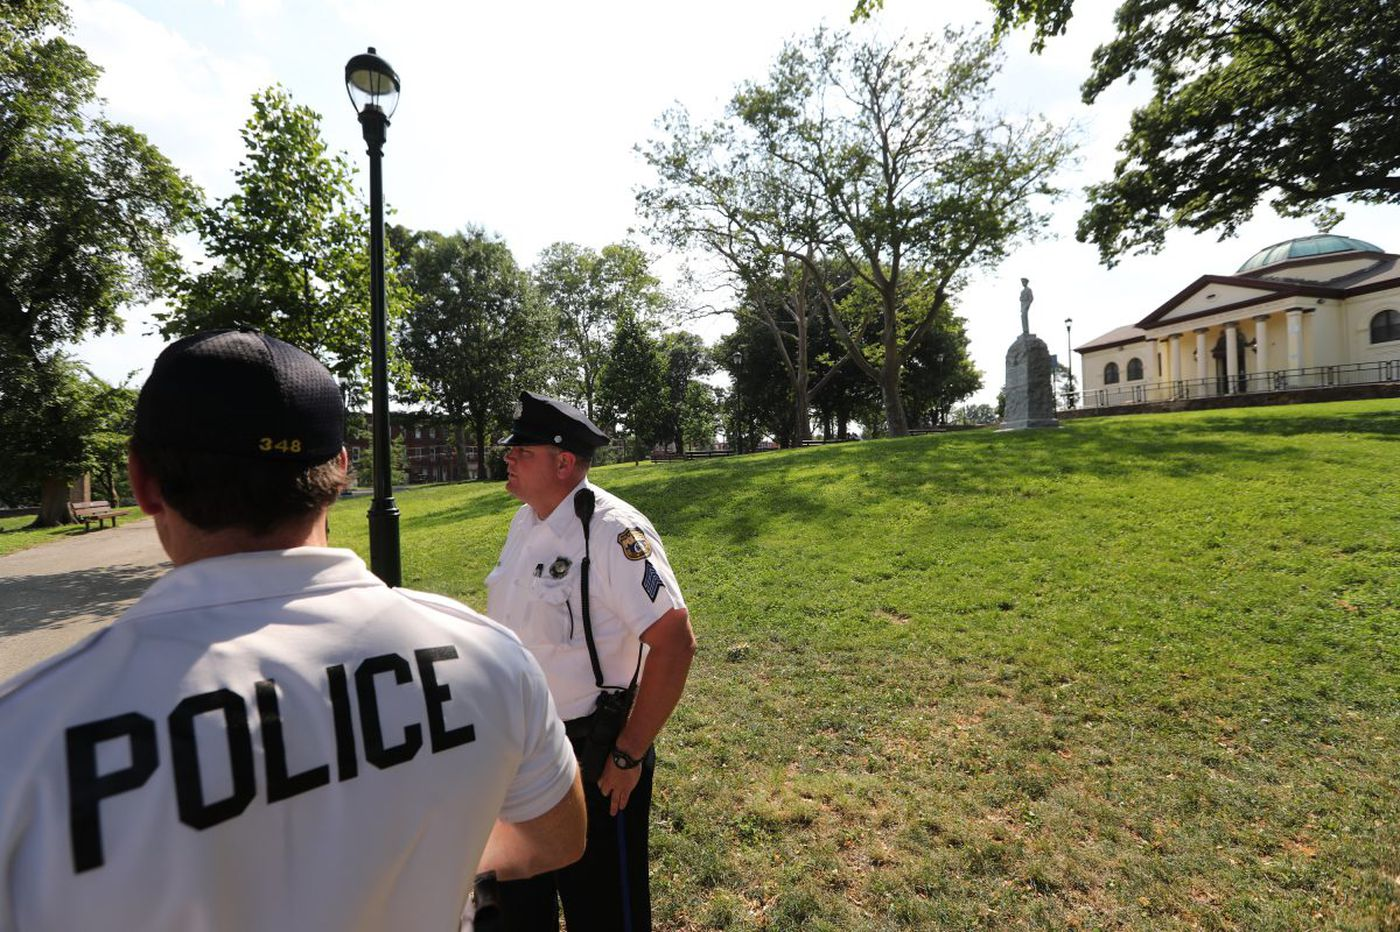 Heroin tourists check out of McPherson Square library, courtesy of police